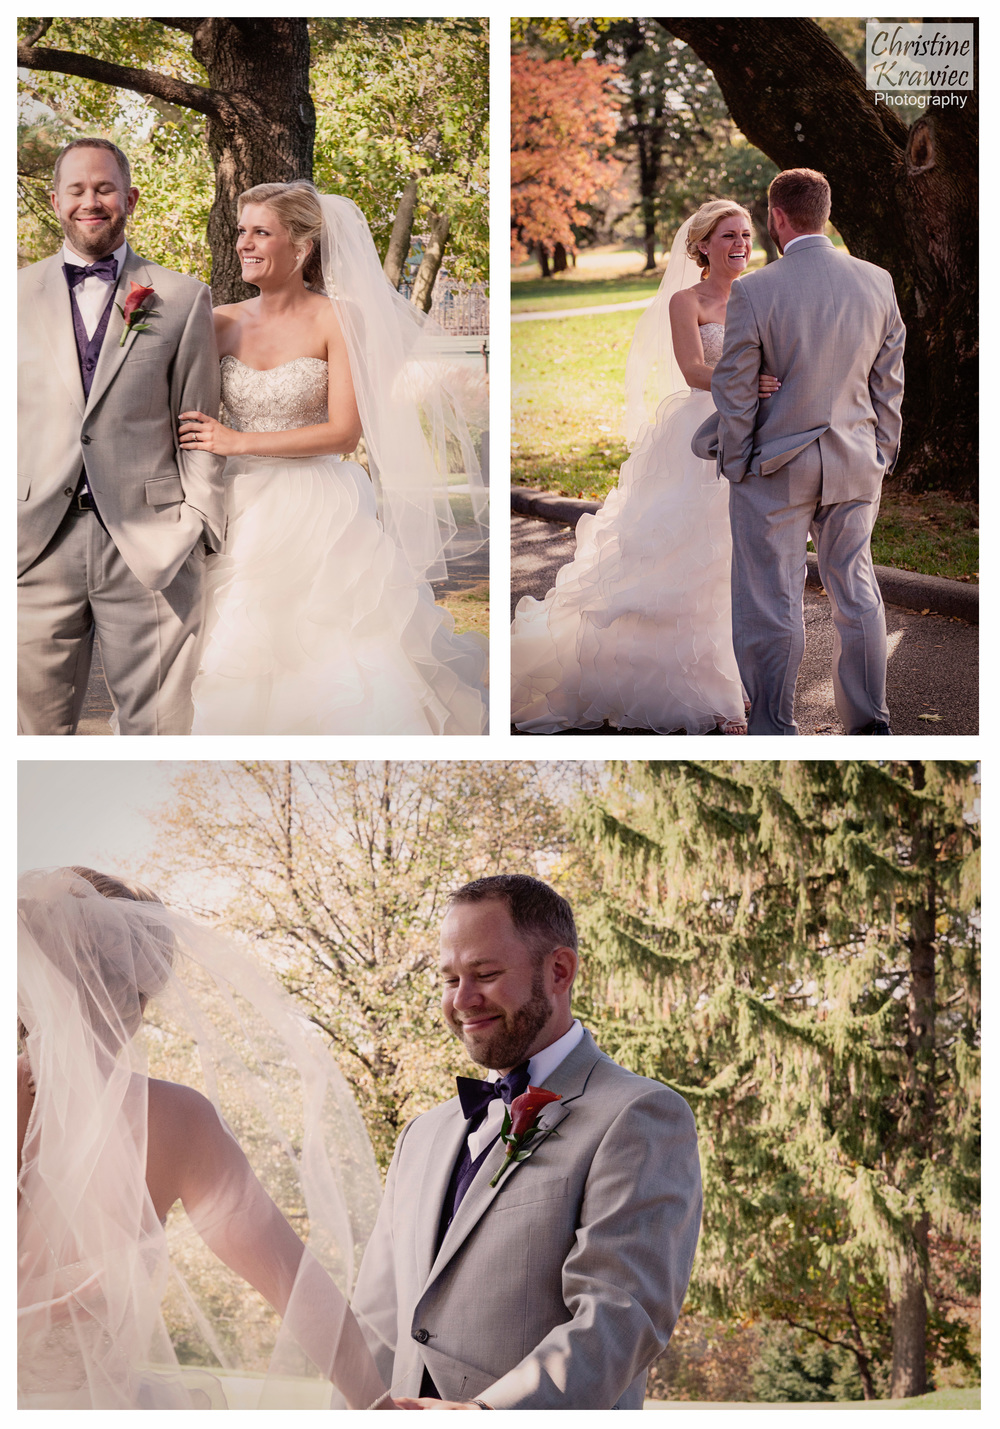 Christine Krawiec Photography - Hartefeld National Golf Club Wedding